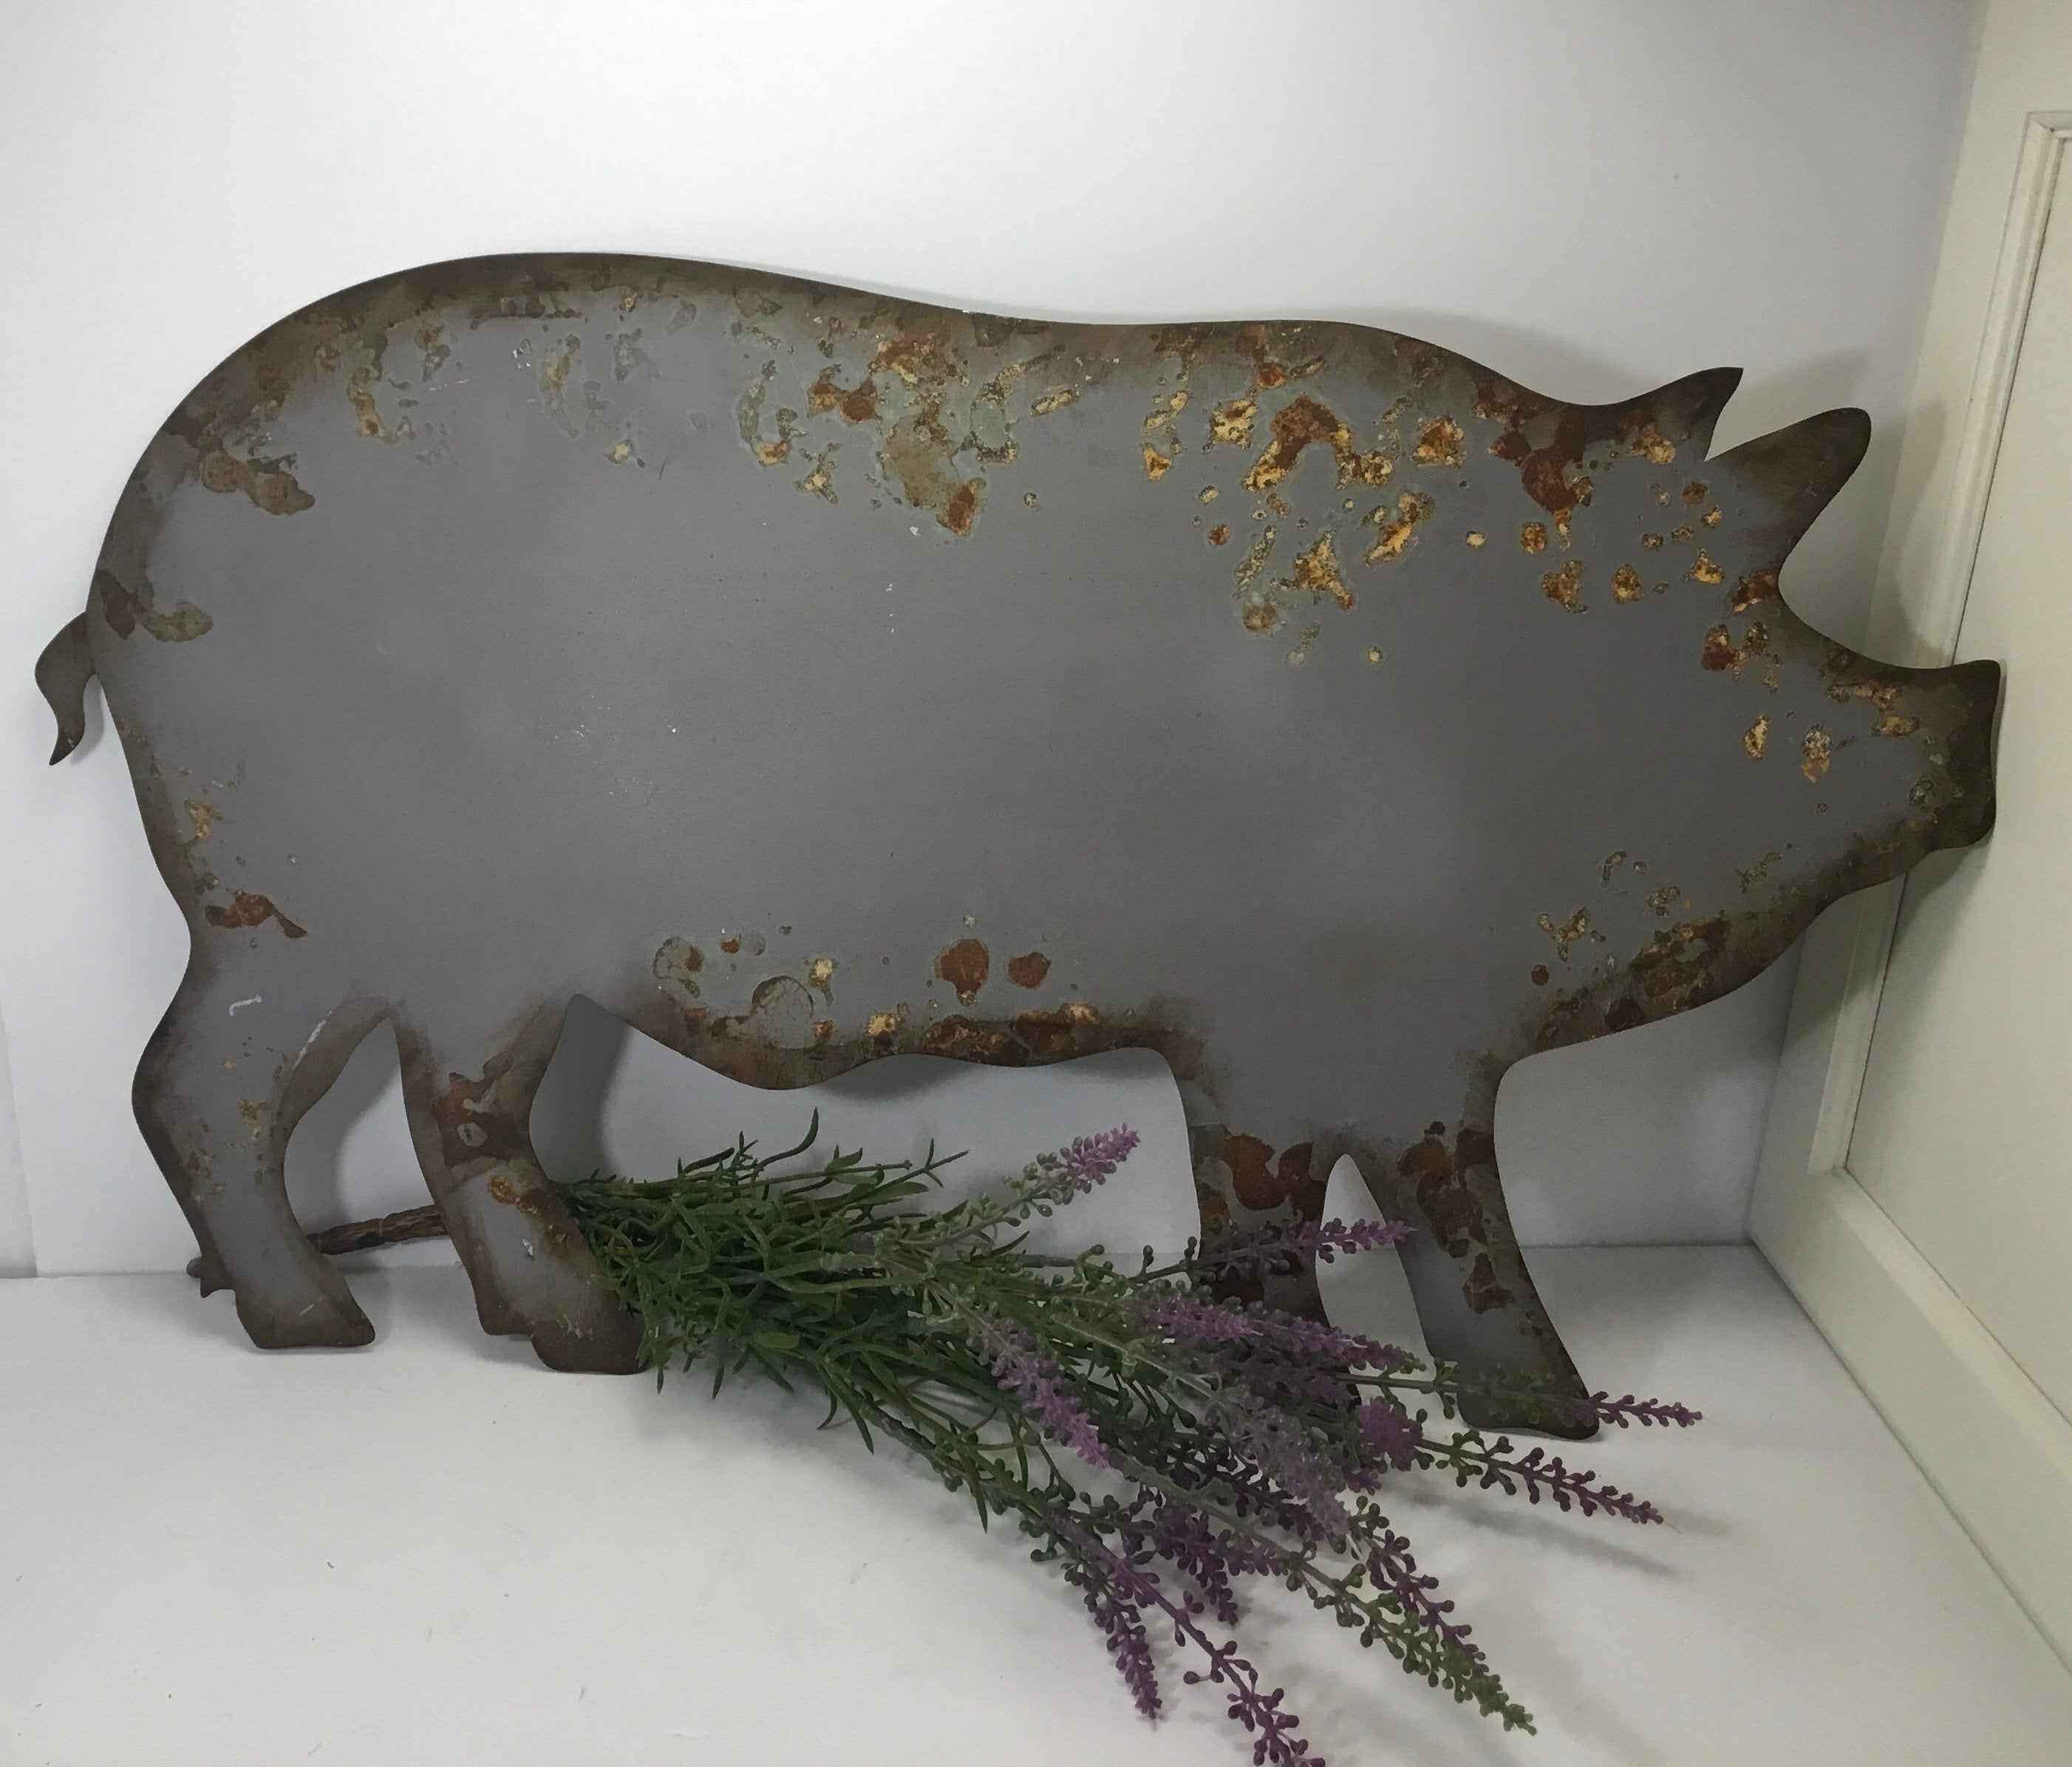 Metal Pig Wall Hanging Metal Pig Sign Farmhouse Decor Wall Hanging Pig Decor Kitchen Decor Pig Farmhouse D Pig Kitchen Decor Pig Decor Wall Hanging